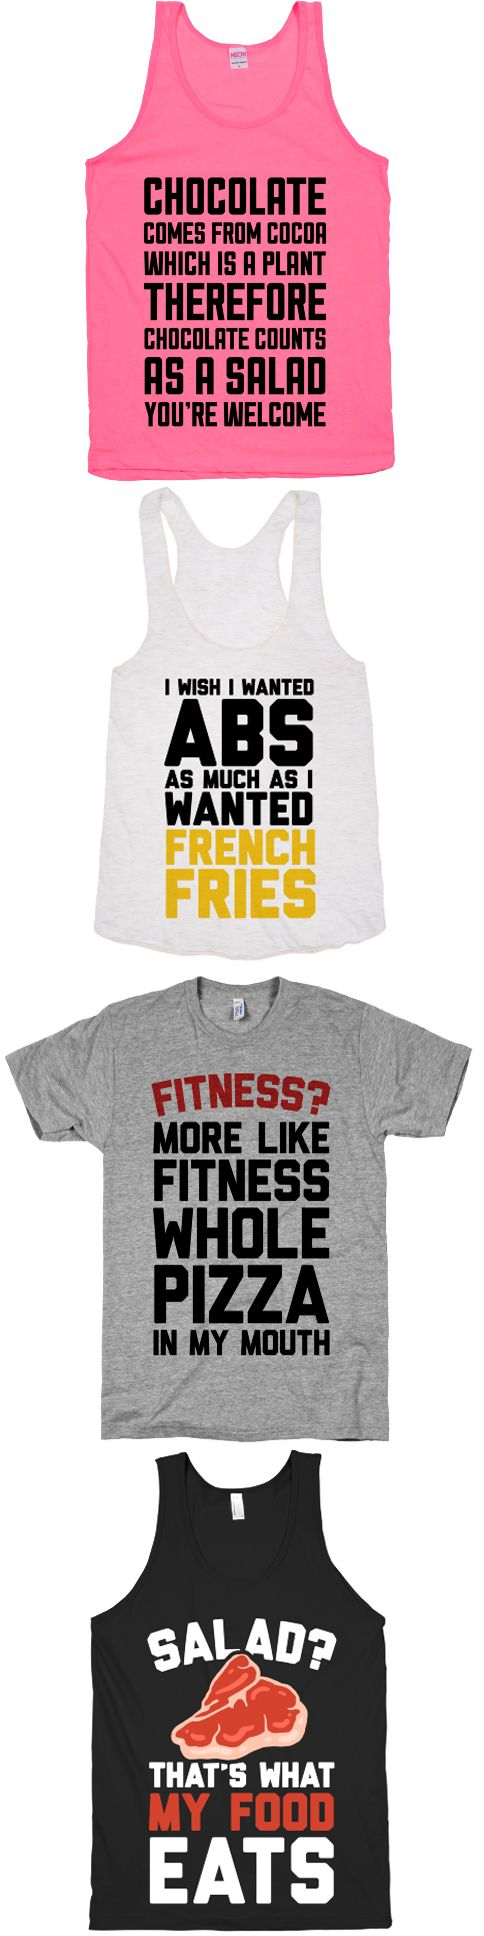 Everyone loves a good cheat day. What's the point of working out if you can't reap the rewards in the form of pizza and french fries? Check out our whole collection of cheat day tees and tanks at Activate Apparel.